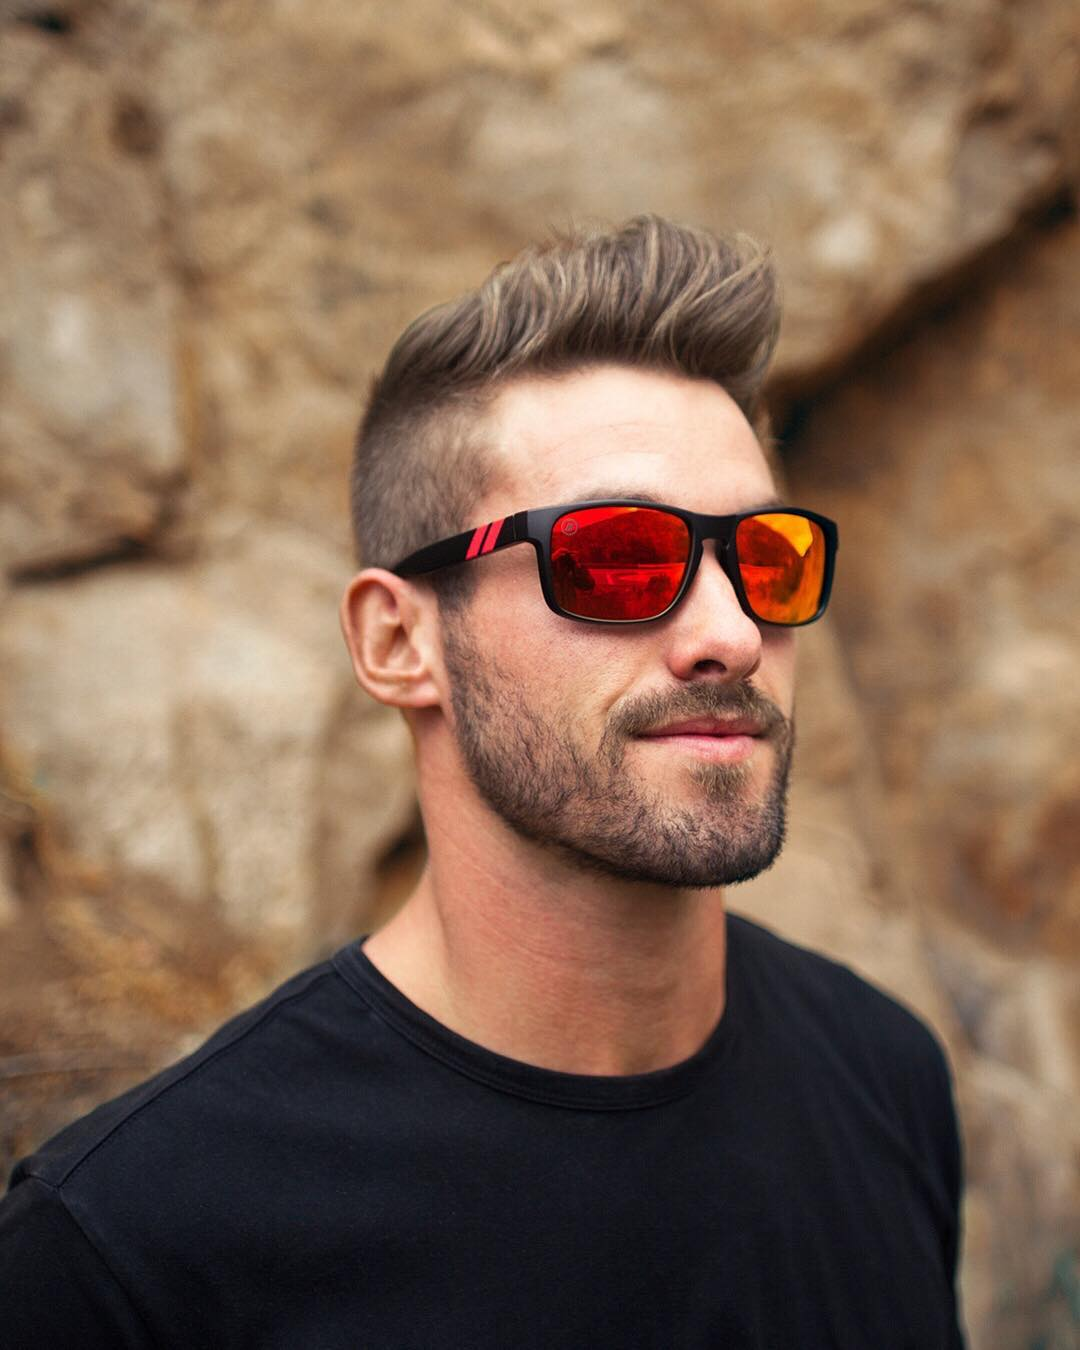 e39f2cdf92f6 Our New 'Red Strike' shades serve up scorching style built for the rigors of